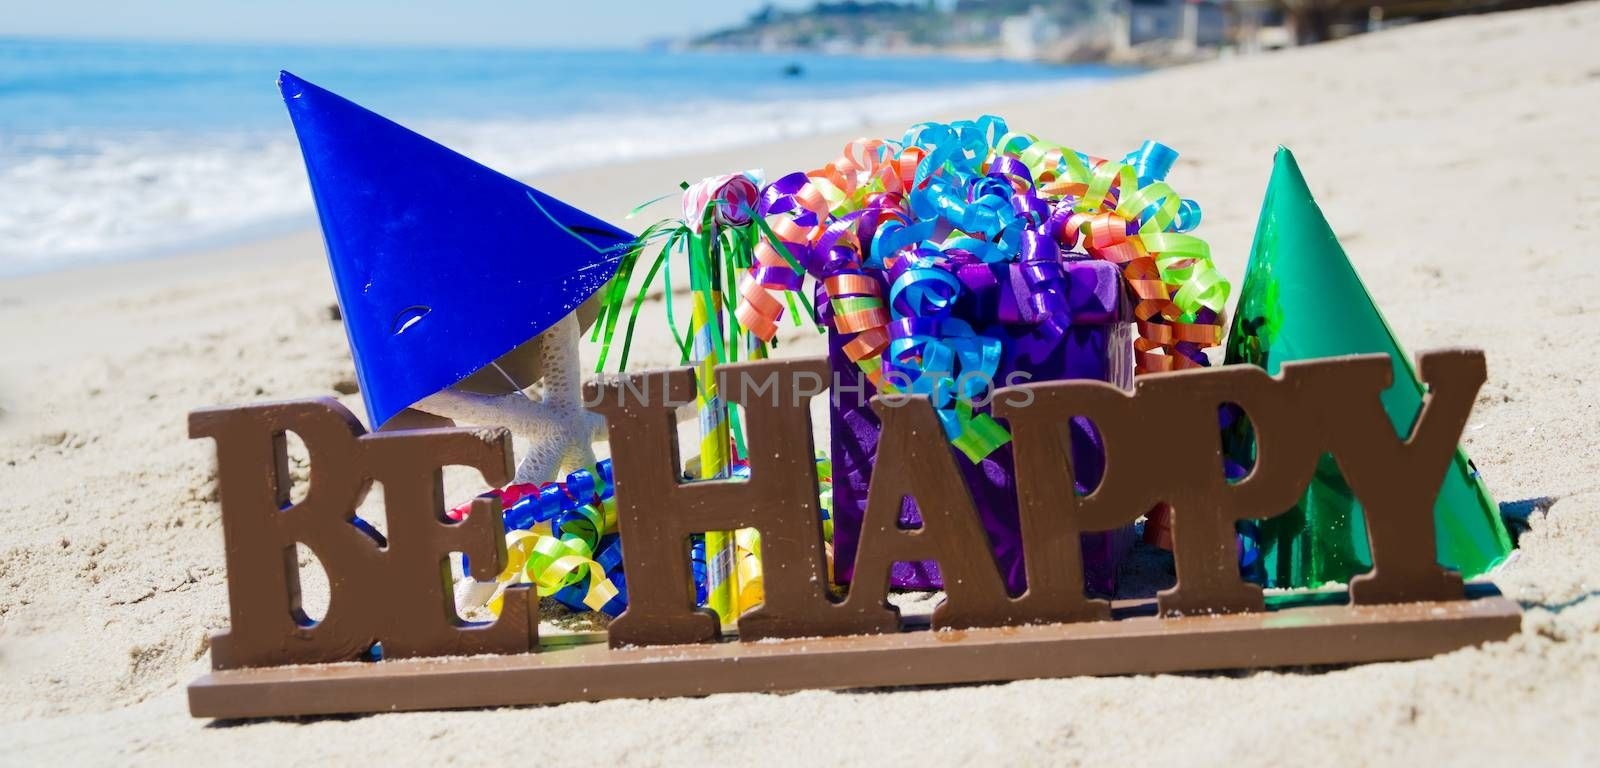 """Sign """"Be Happy"""" with Birthday decorations on the beach by the ocean"""